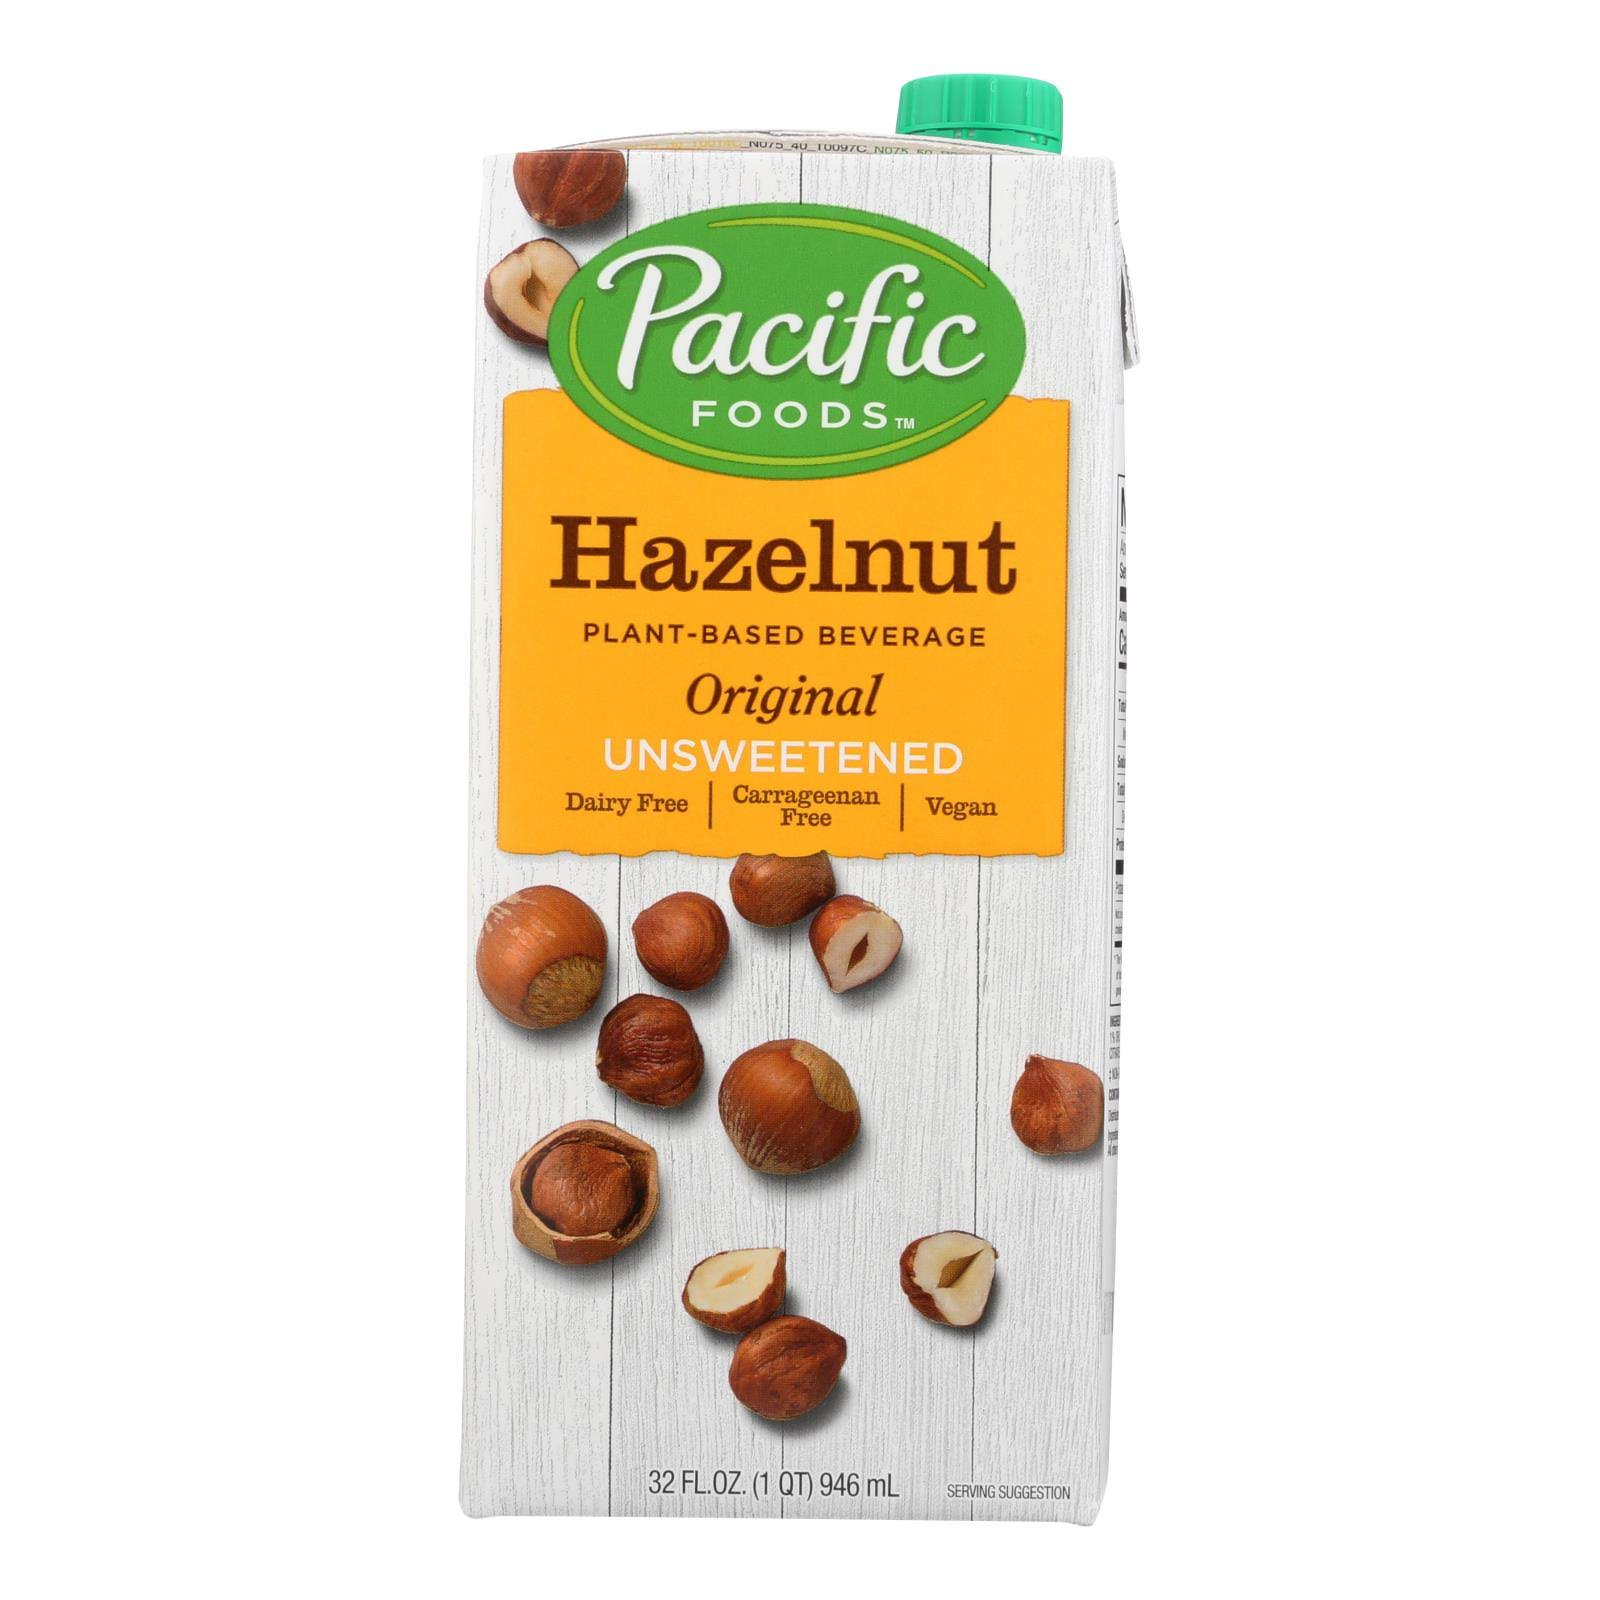 Pacific Foods Hazelnut Original Plant Based Beverage - Unsweetened, 32oz